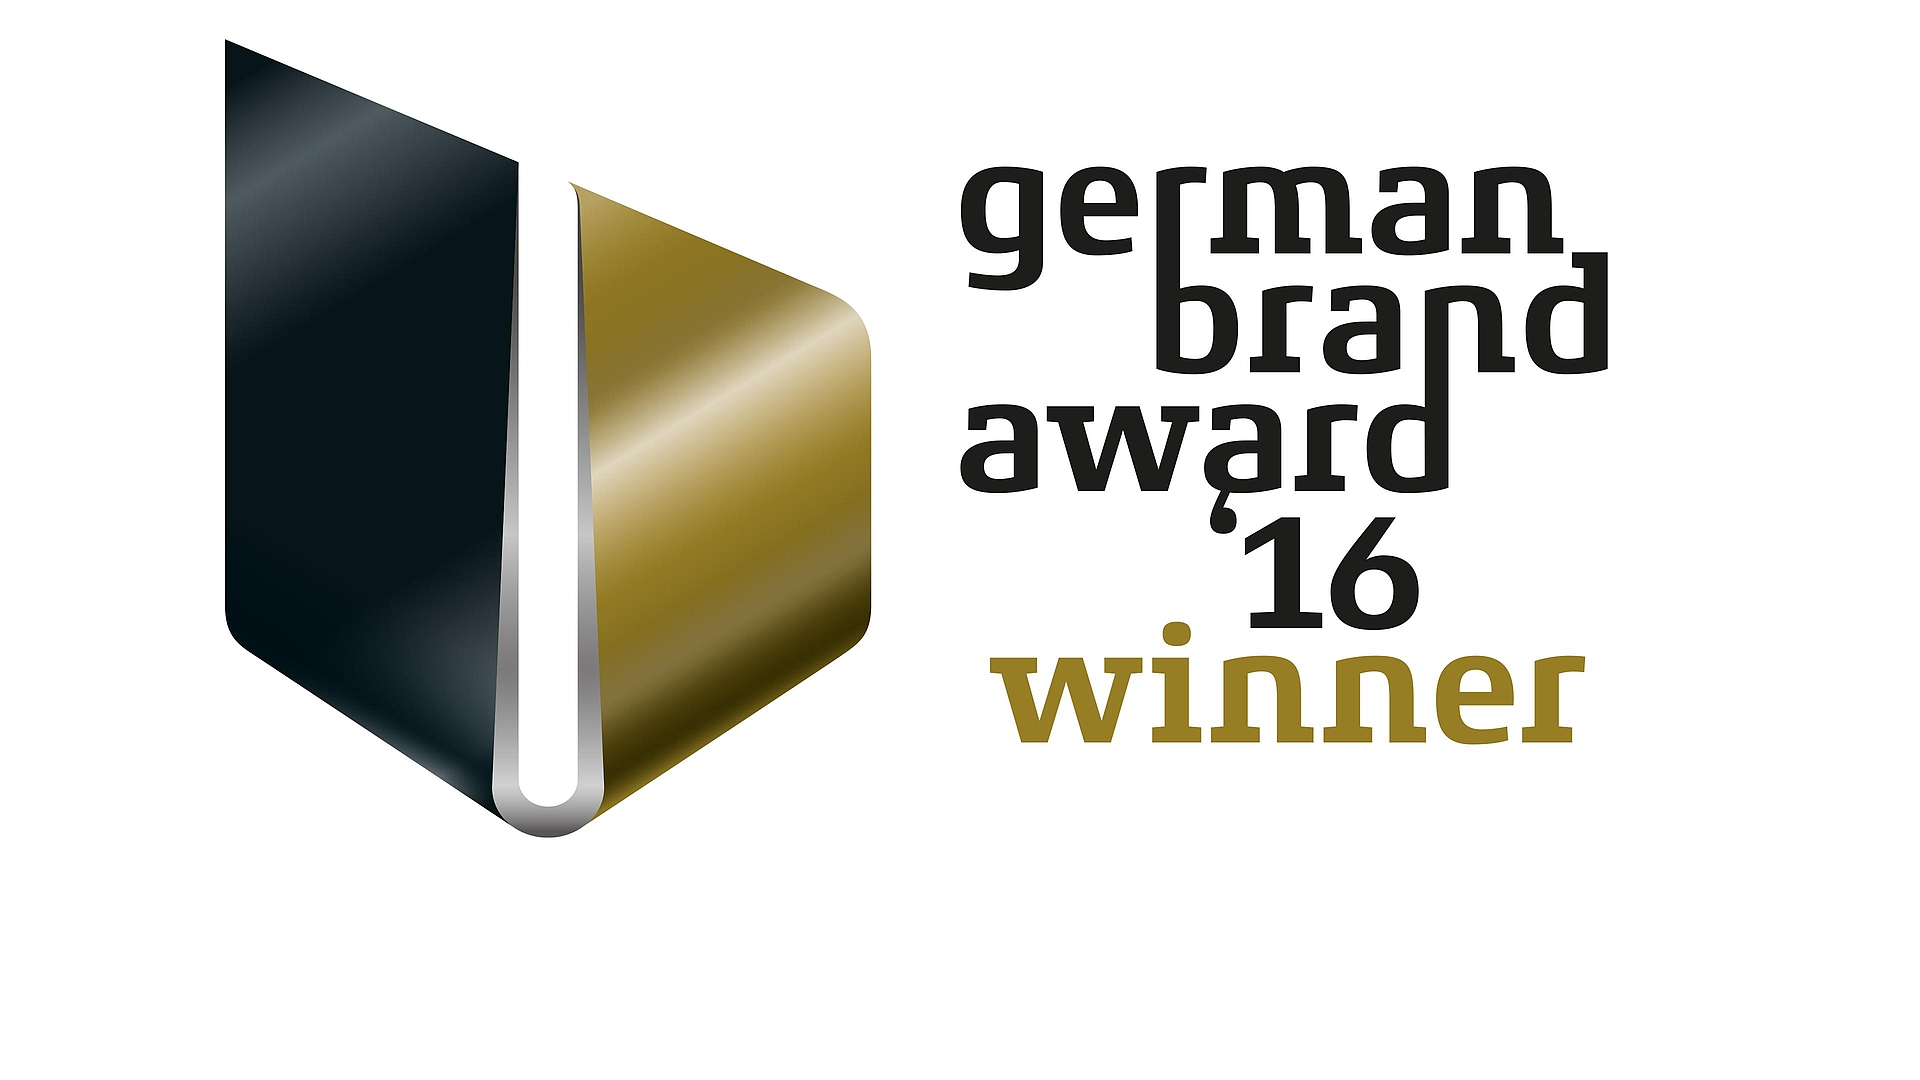 bora-com_awards_3840x2160px_0021_German-Brand-Award_2016.jpg